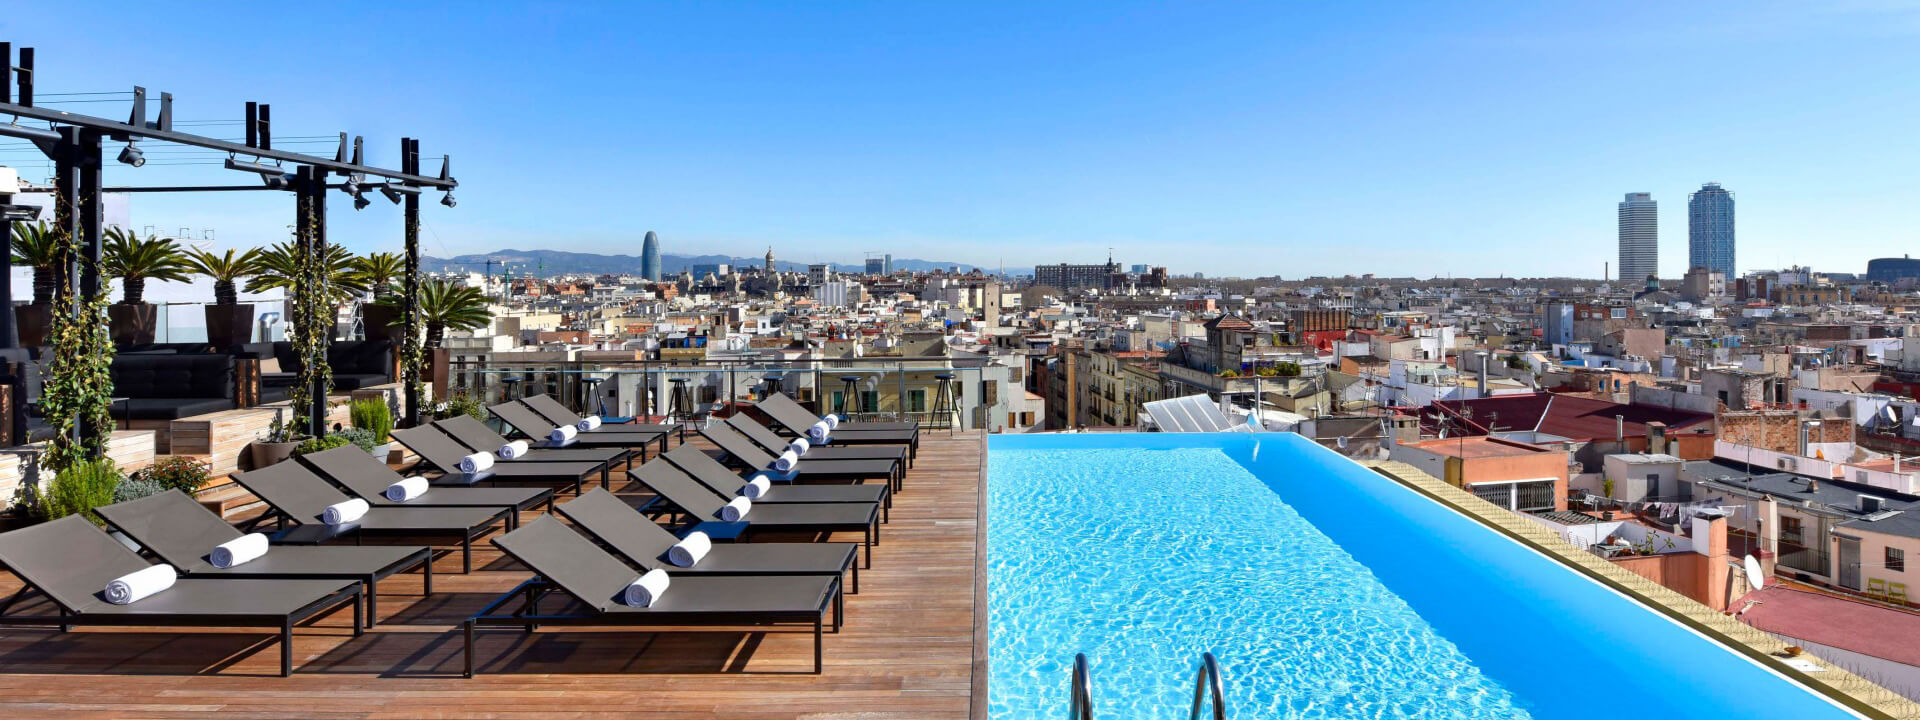 Ipe Plus Grans Hotel Central Barcelona